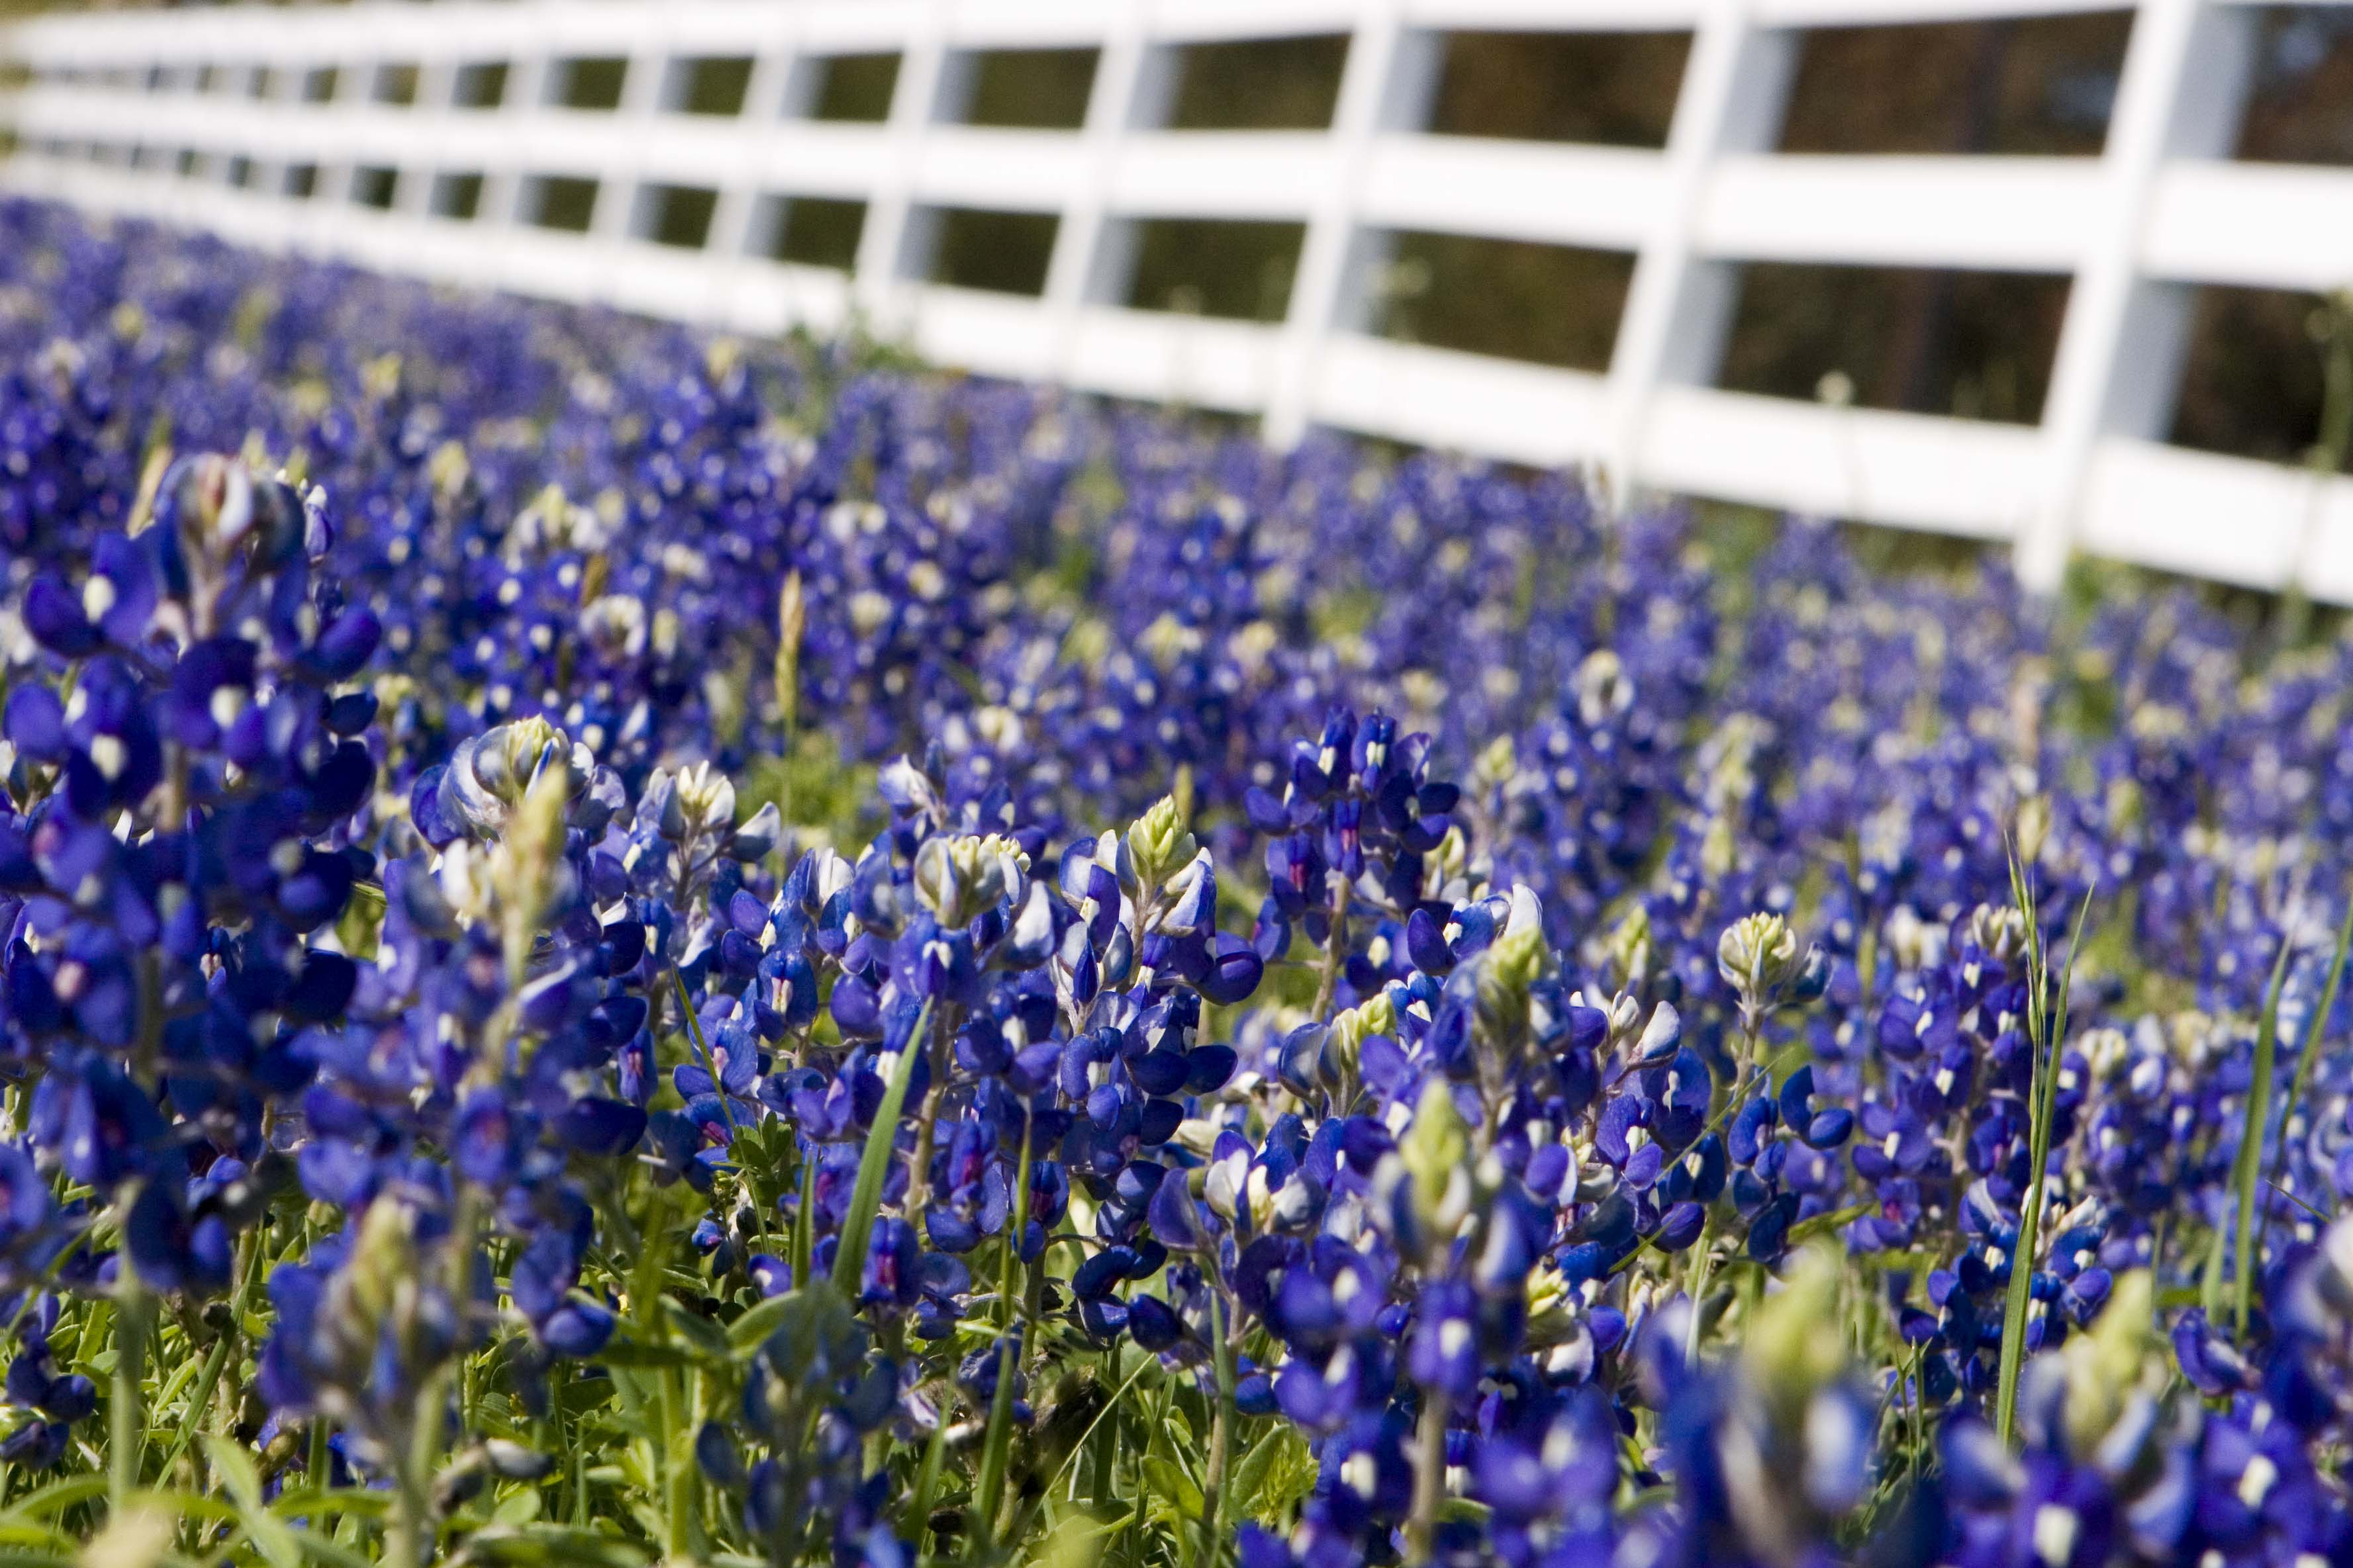 Spring in Texas means it's time to drive through the Hill Country to photograph the wildflowers!